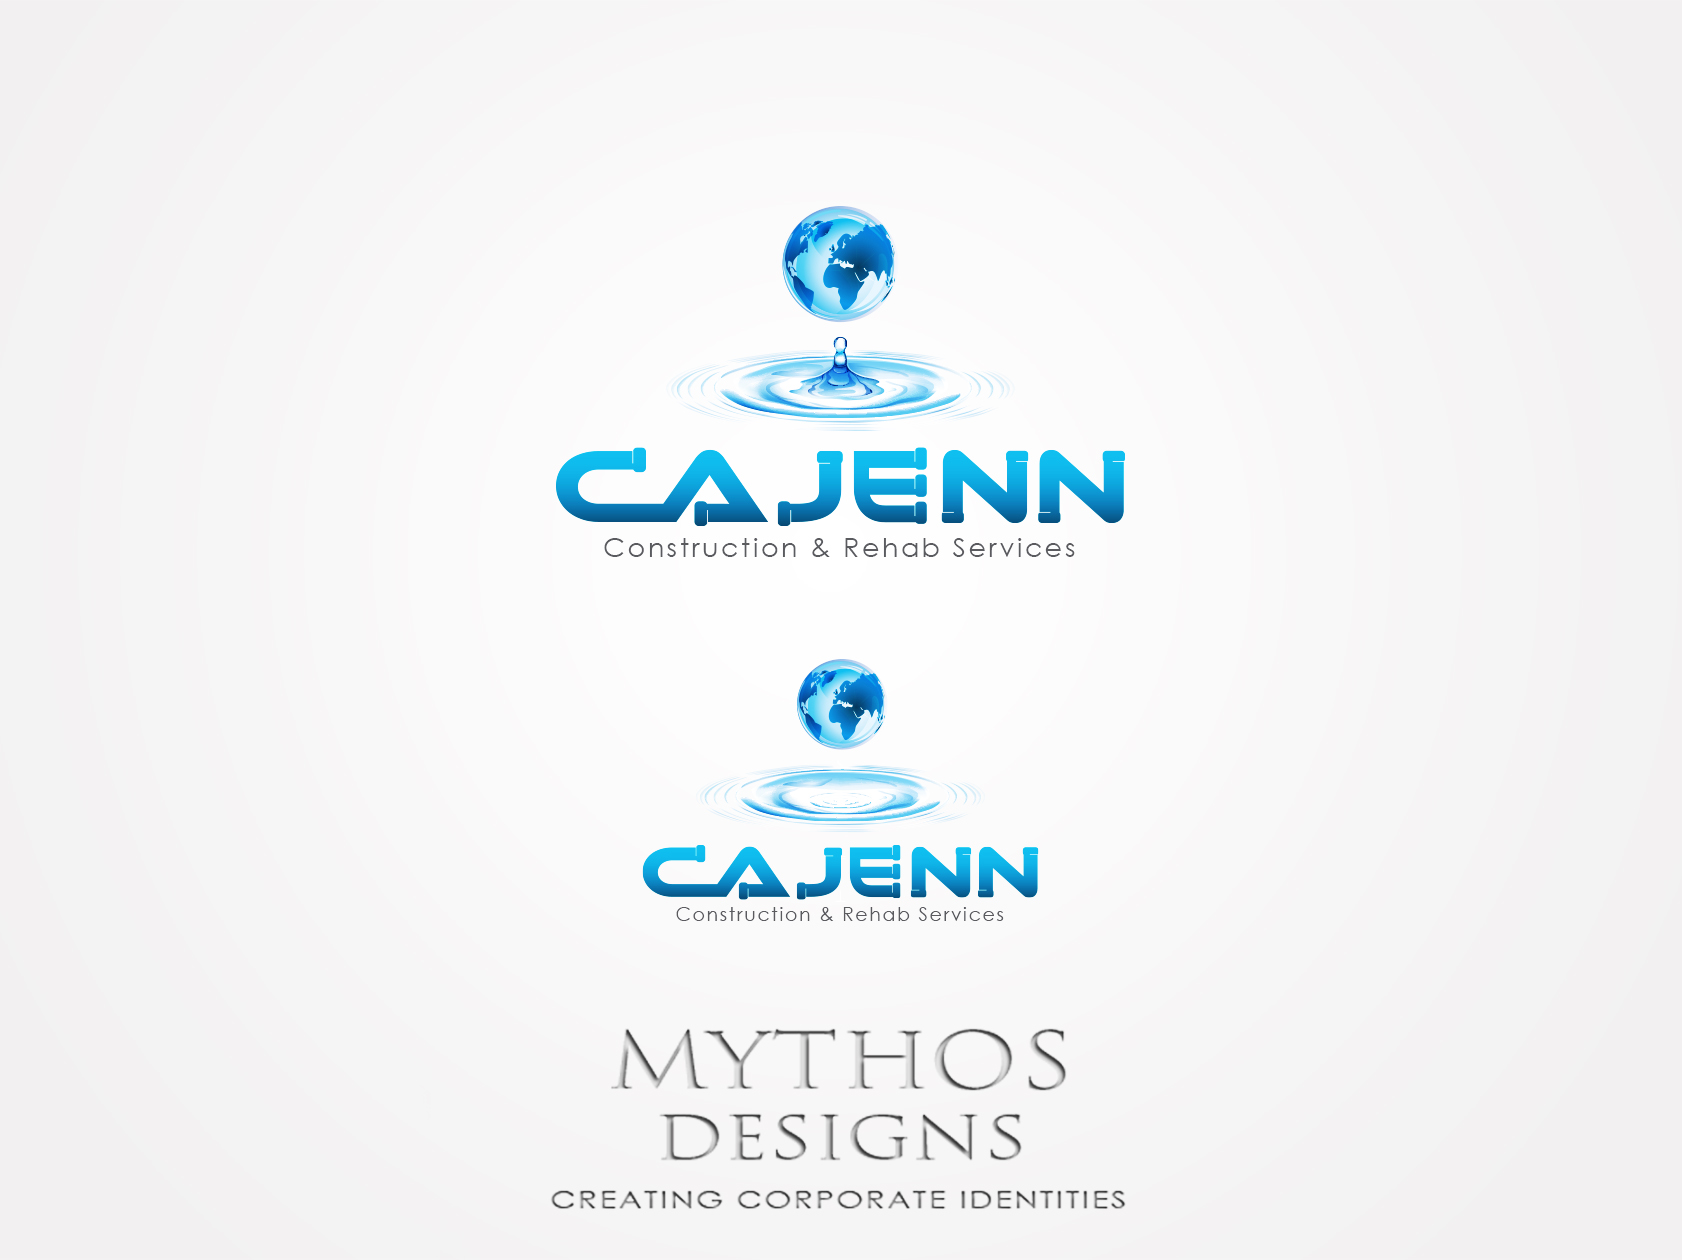 Logo Design by Mythos Designs - Entry No. 62 in the Logo Design Contest New Logo Design for CaJenn Construction & Rehab Services.